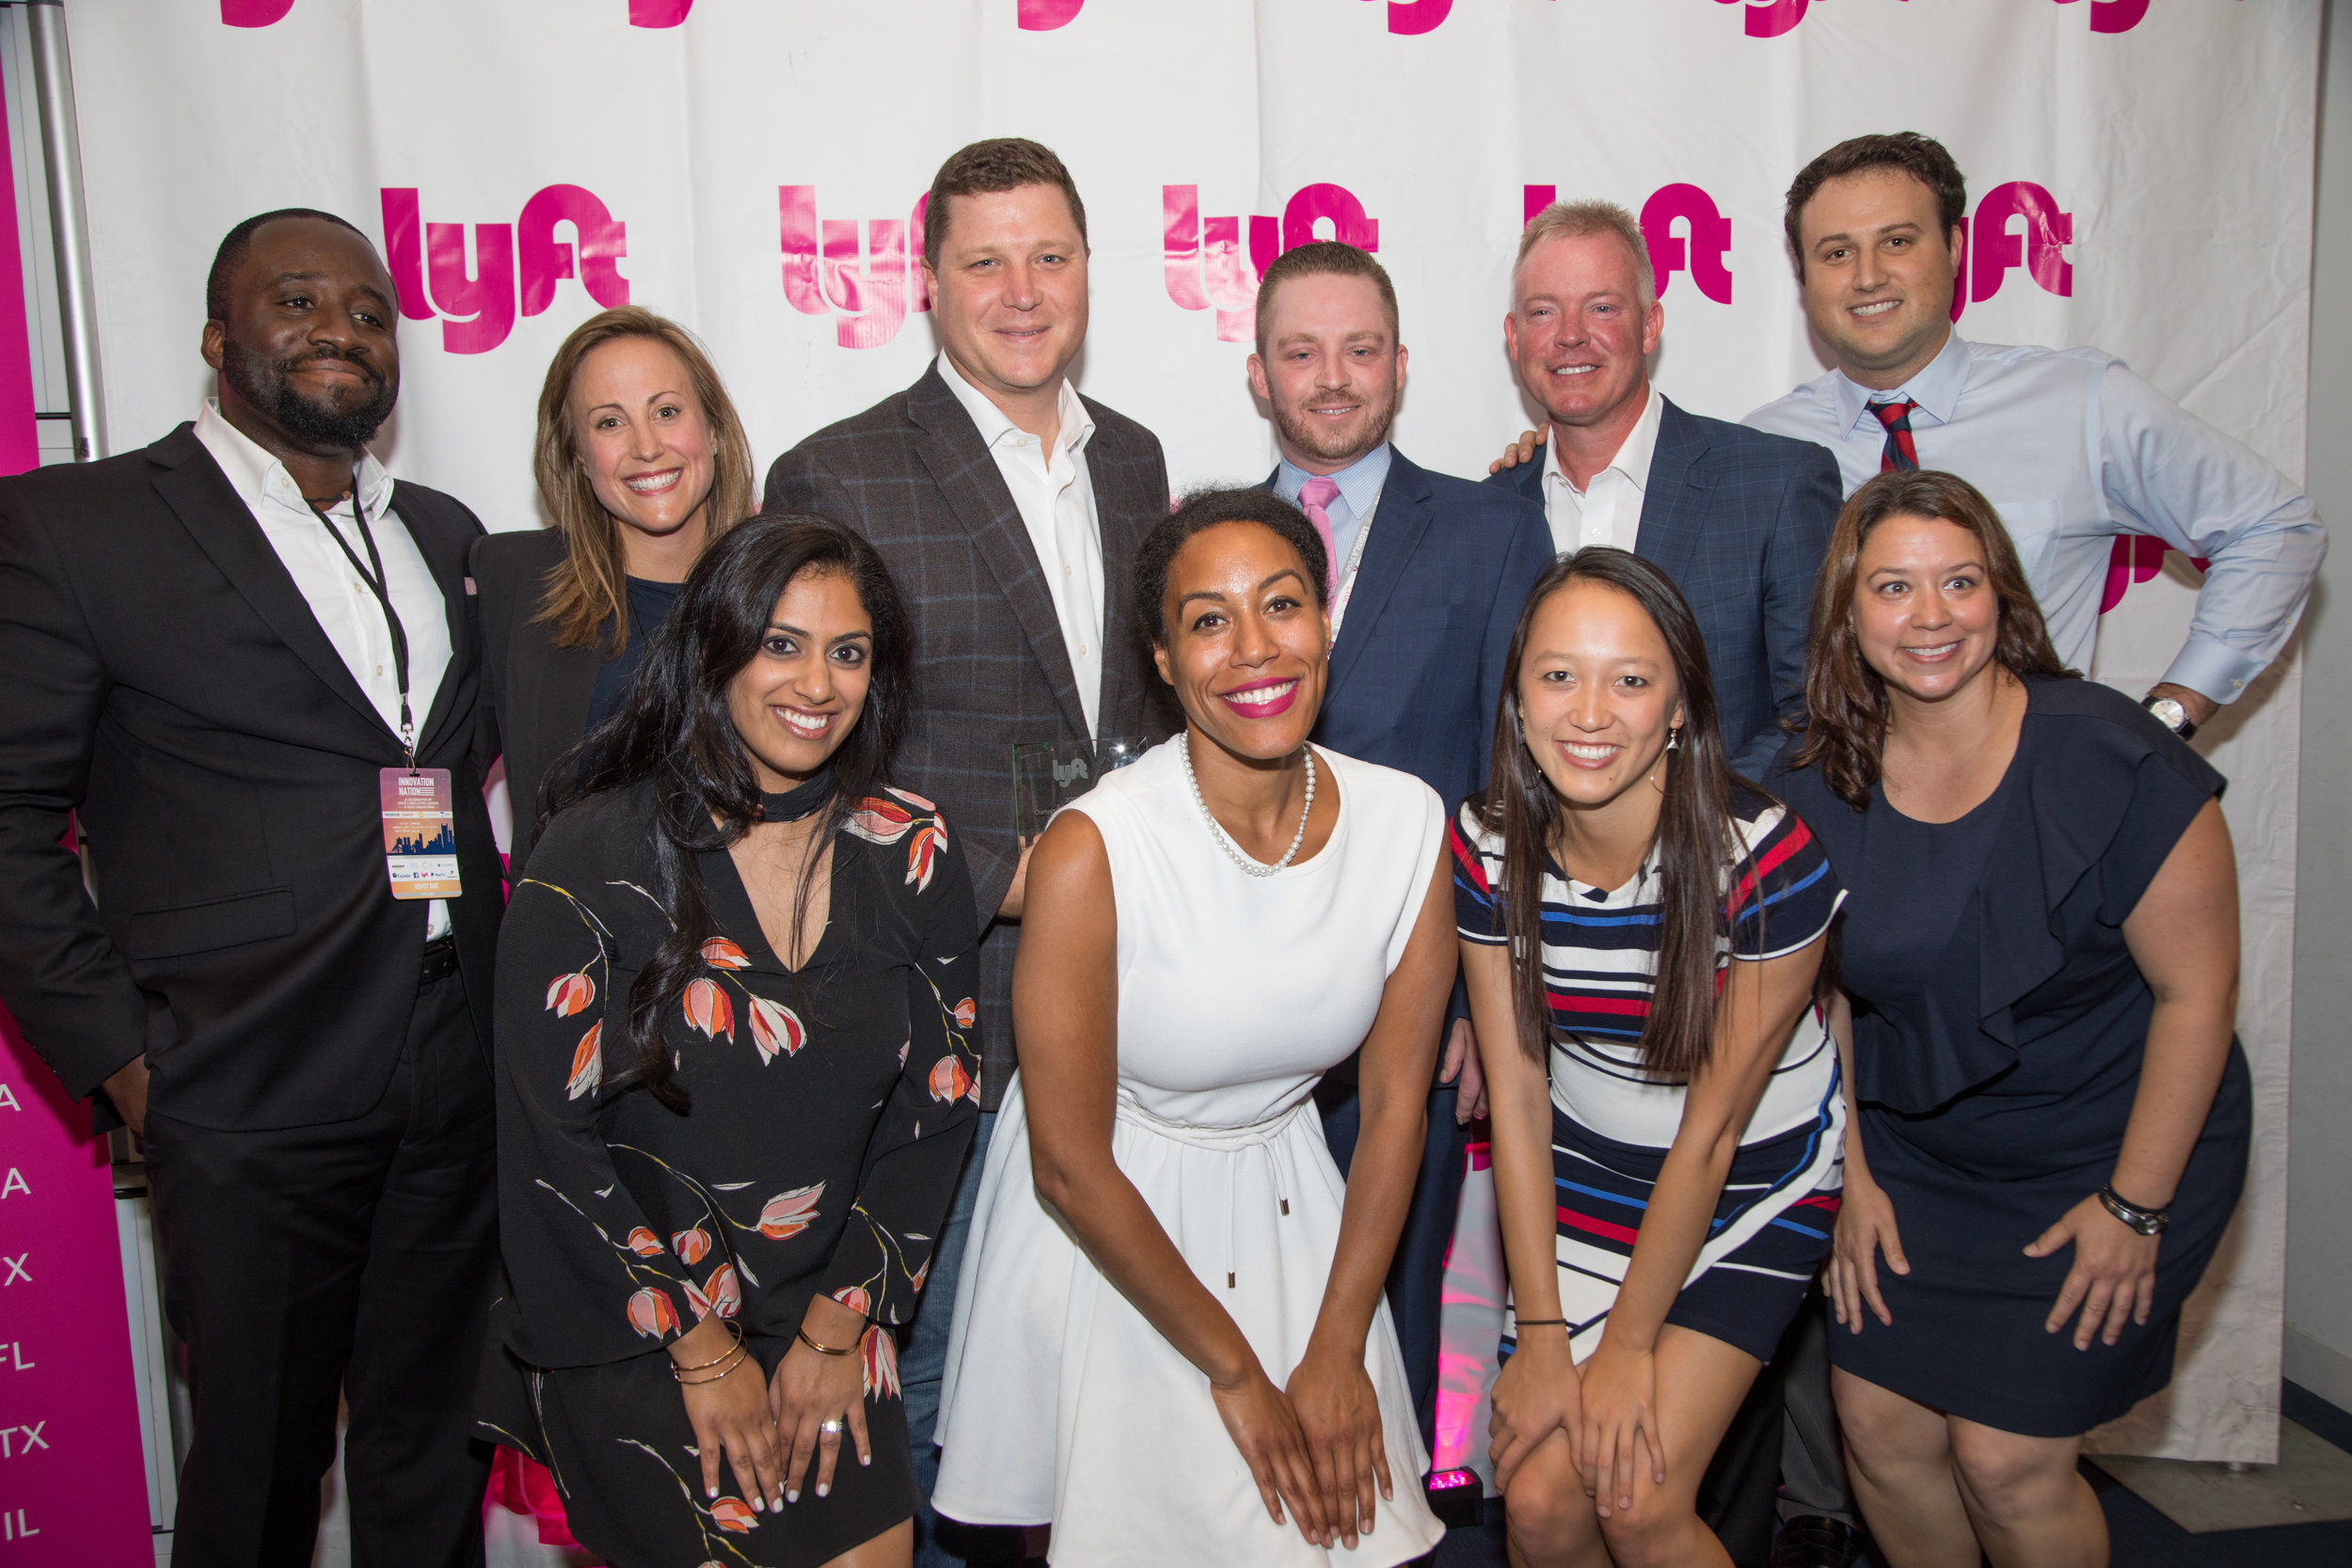 Senator Jeff Brandes of Florida, Representative Mark Cusack of Massachusetts, and Representative Brandon Phelps of Illinois with the Lyft team at the National Conference of State Legislatures in Boston.